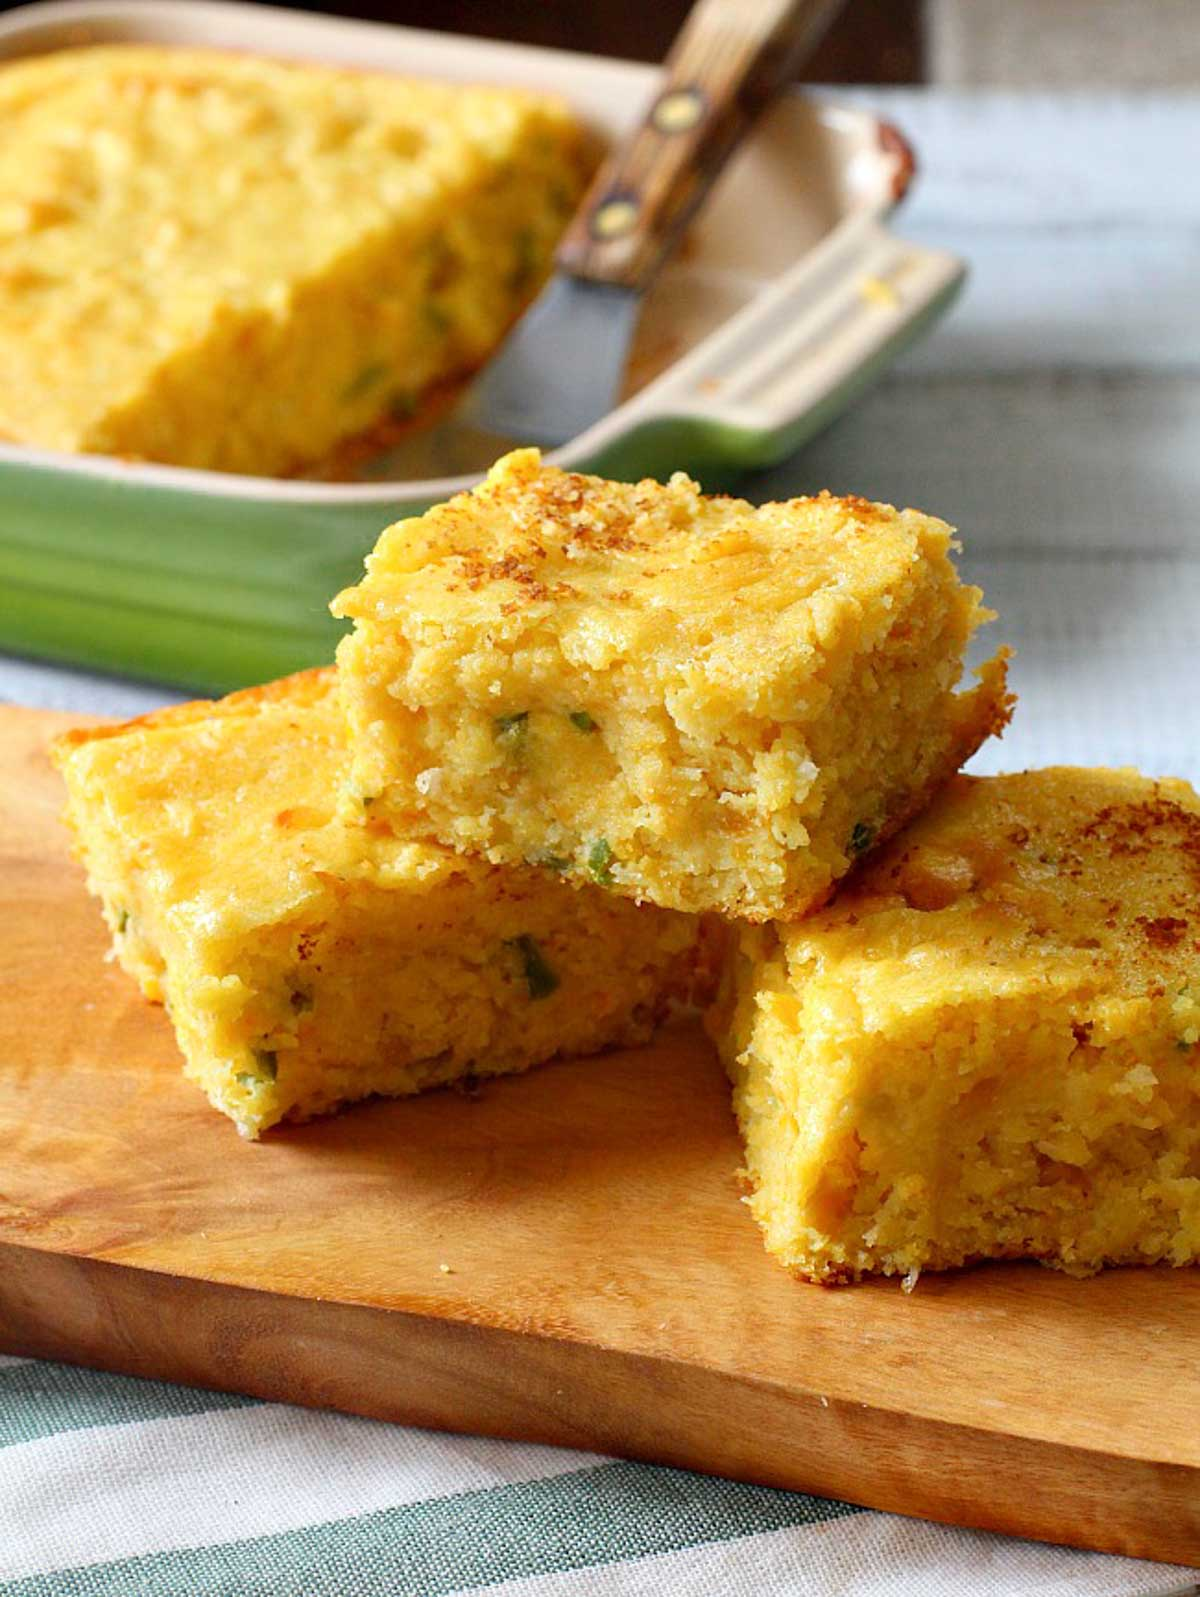 Super moist cornbread cut into squares on a wooden cutting board